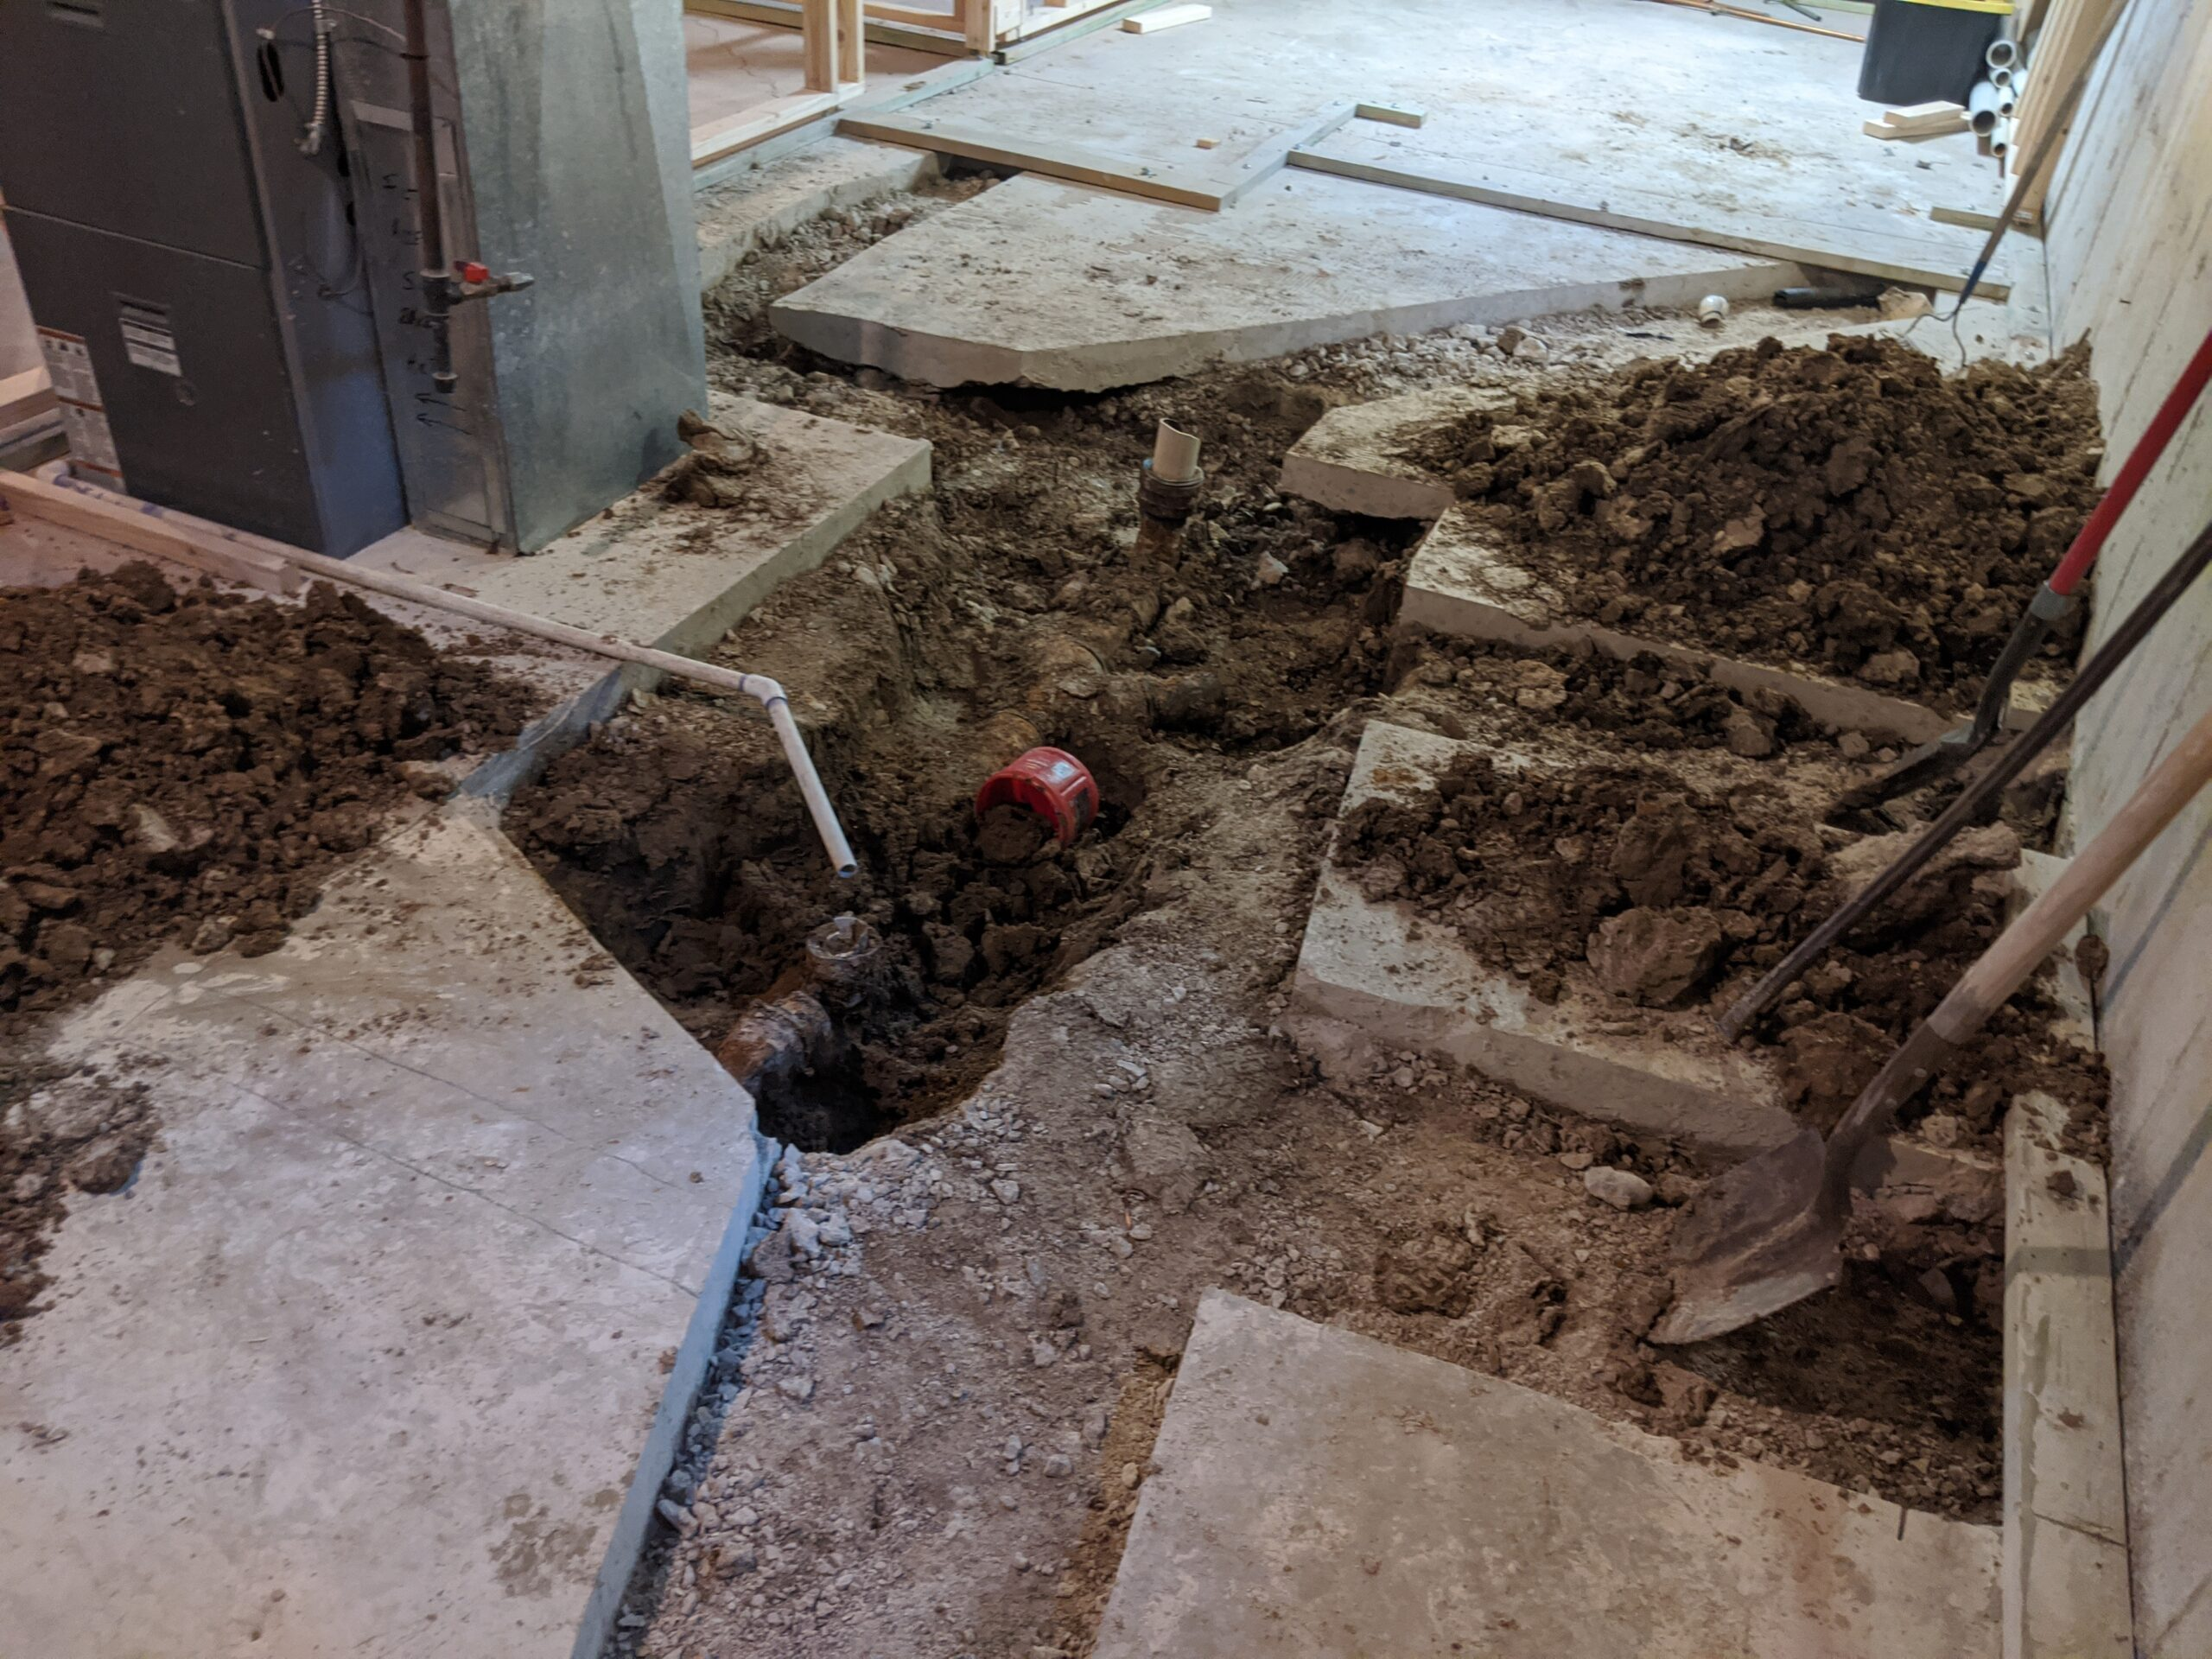 We cut and dug up this much of the basement floor, including a new spot to drain the furnace condensation. Licensed plumber, Jake Jacoby of Progressive Mechanical, had to remove even more concrete to connect the new pipes to the main sewer line for our house.